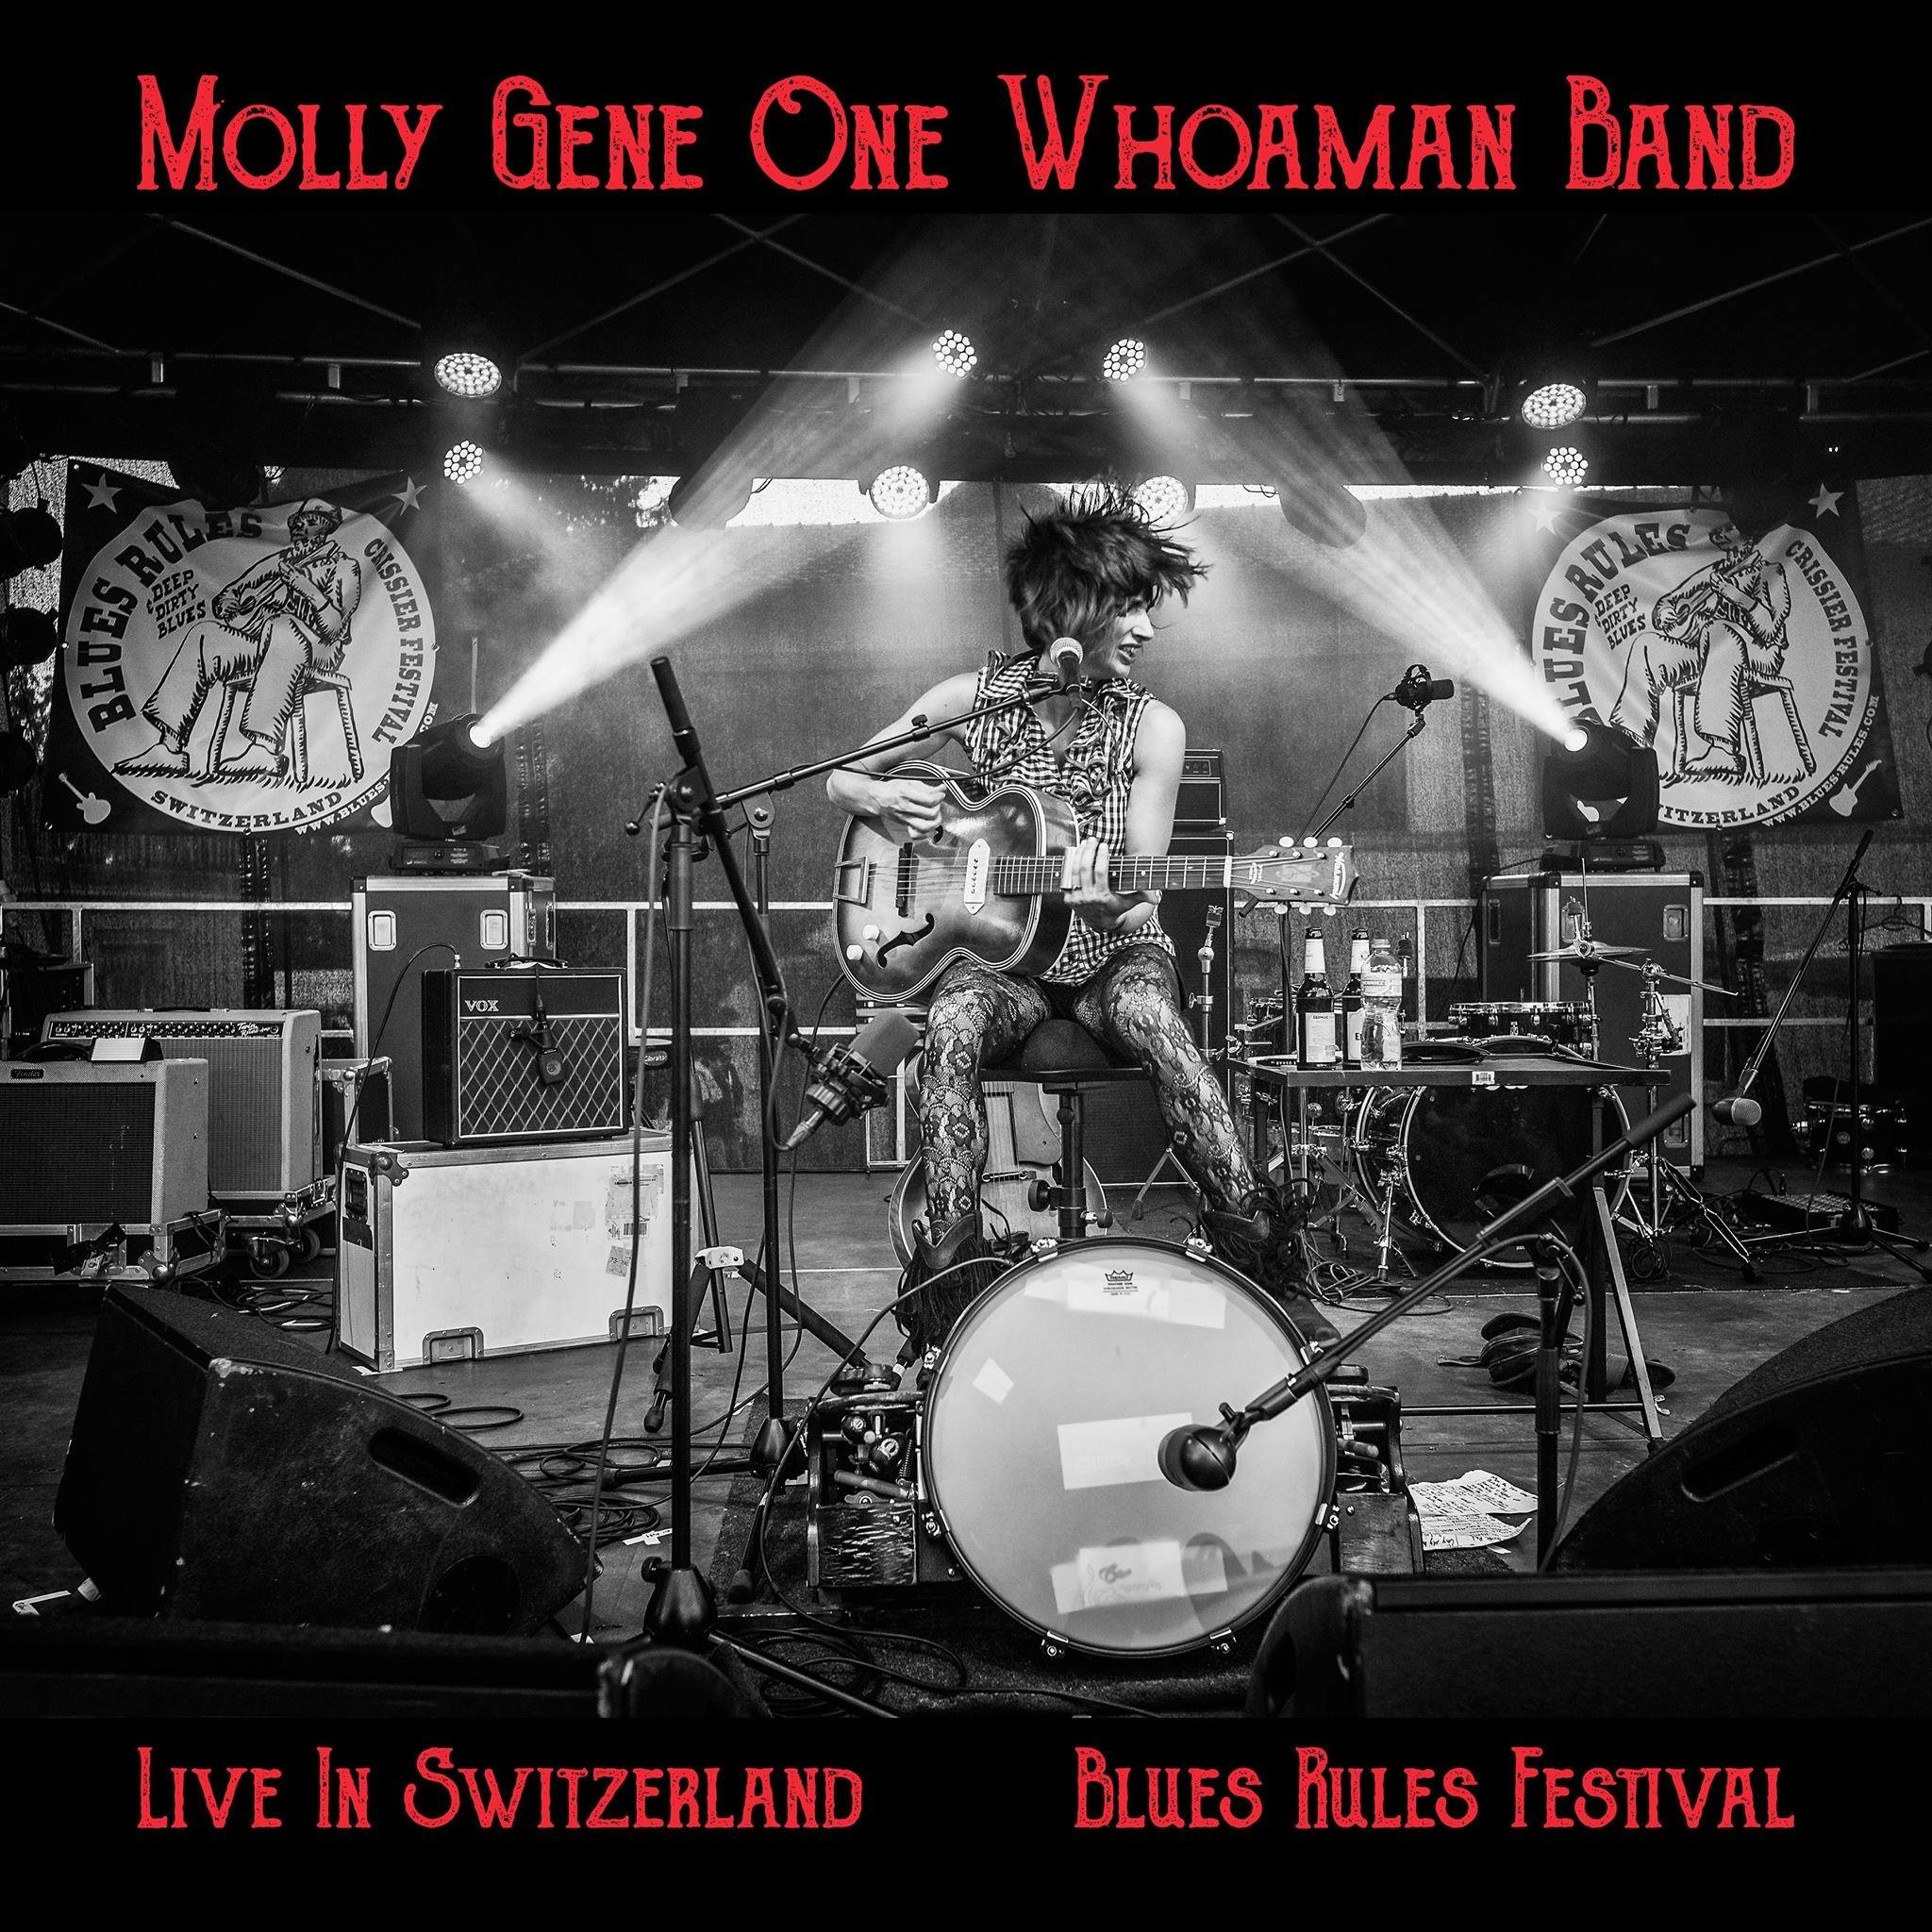 ALBUM REVIEW: Molly Gene One Whoman Band's 'Live in Switzerland: Blues Rules Festival'